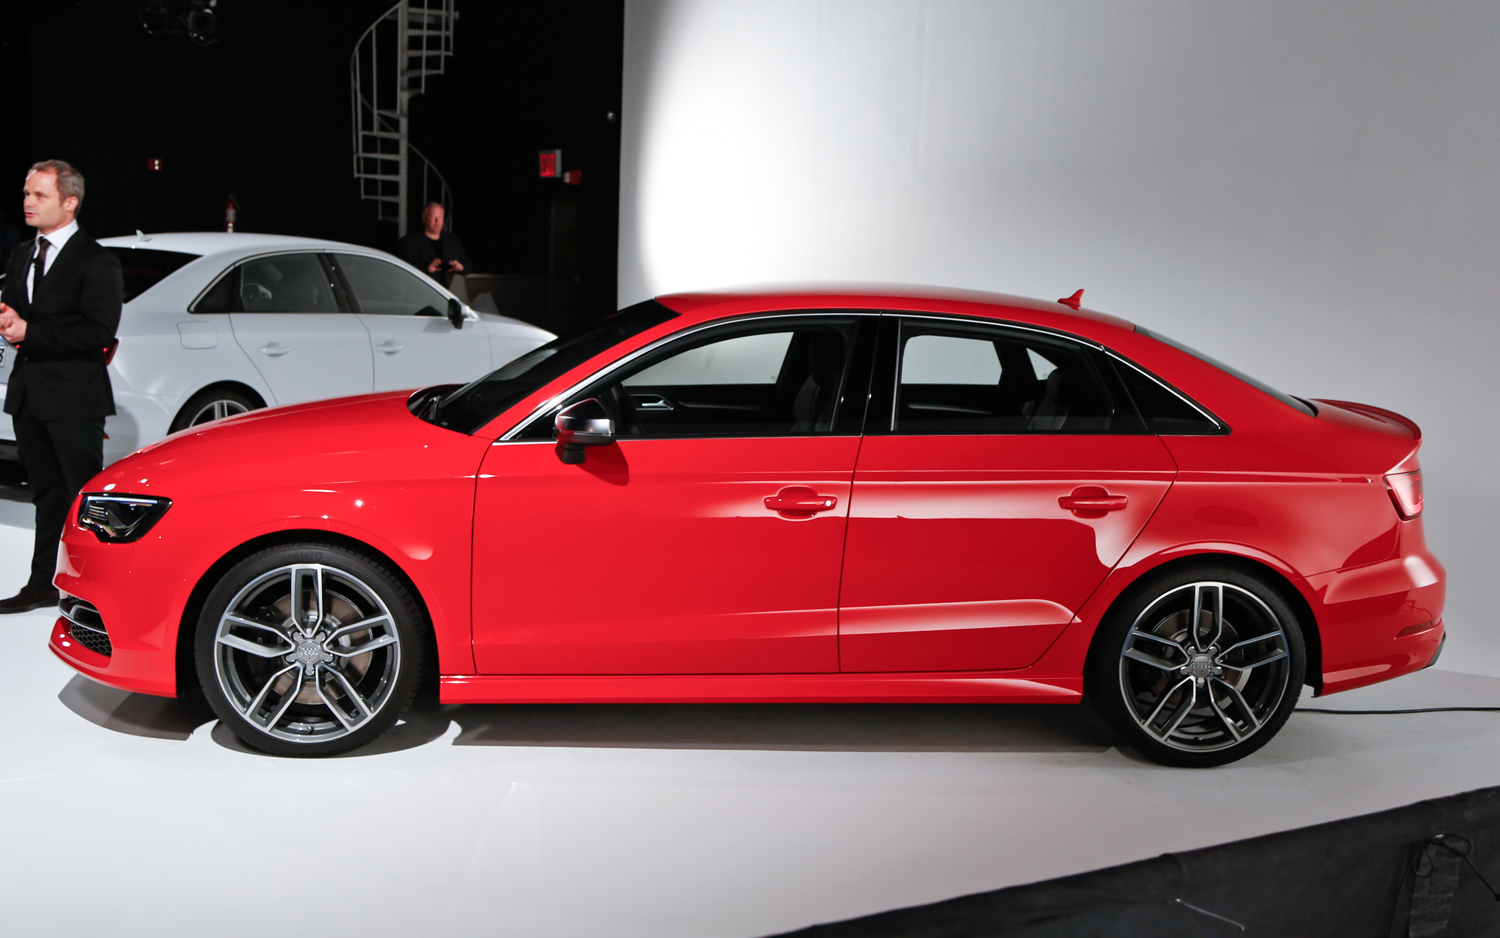 2015 Audi S3 Sedan Side View Auto Show (Photo 10 of 10)